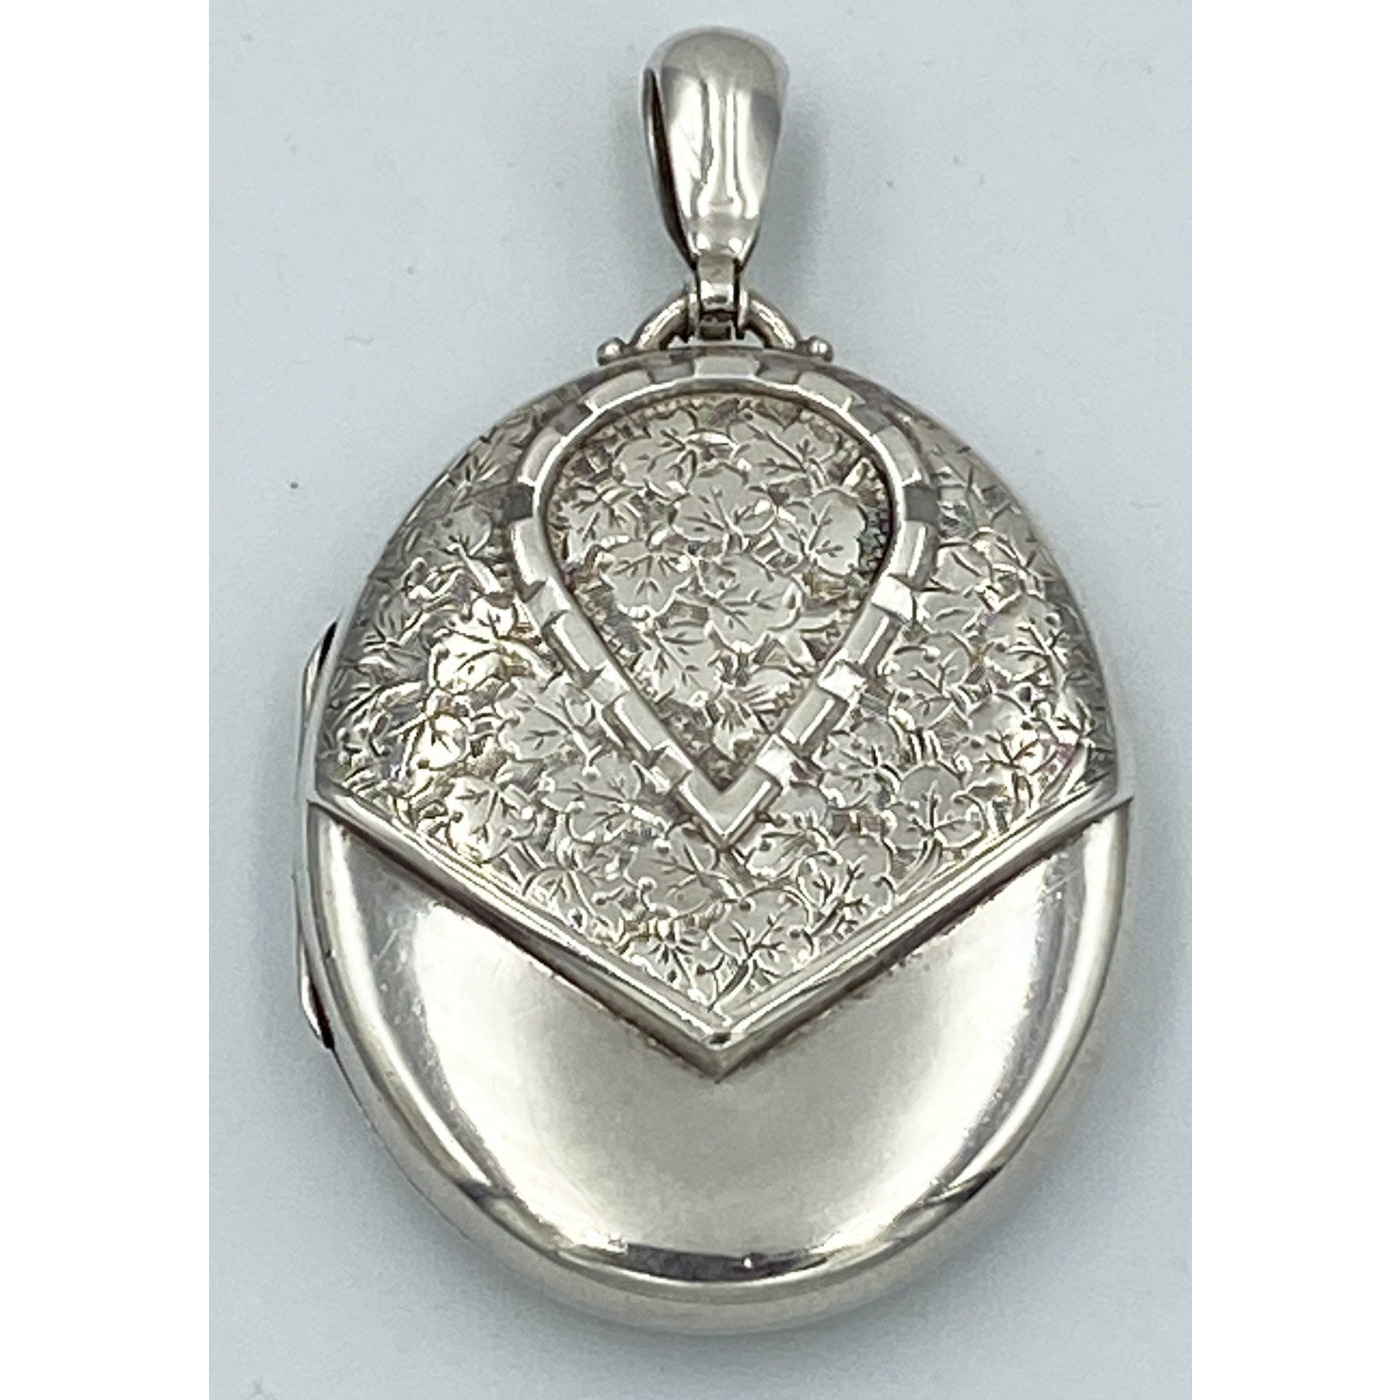 One of the Best Buttonhole or Motif Antique English Silver Locket